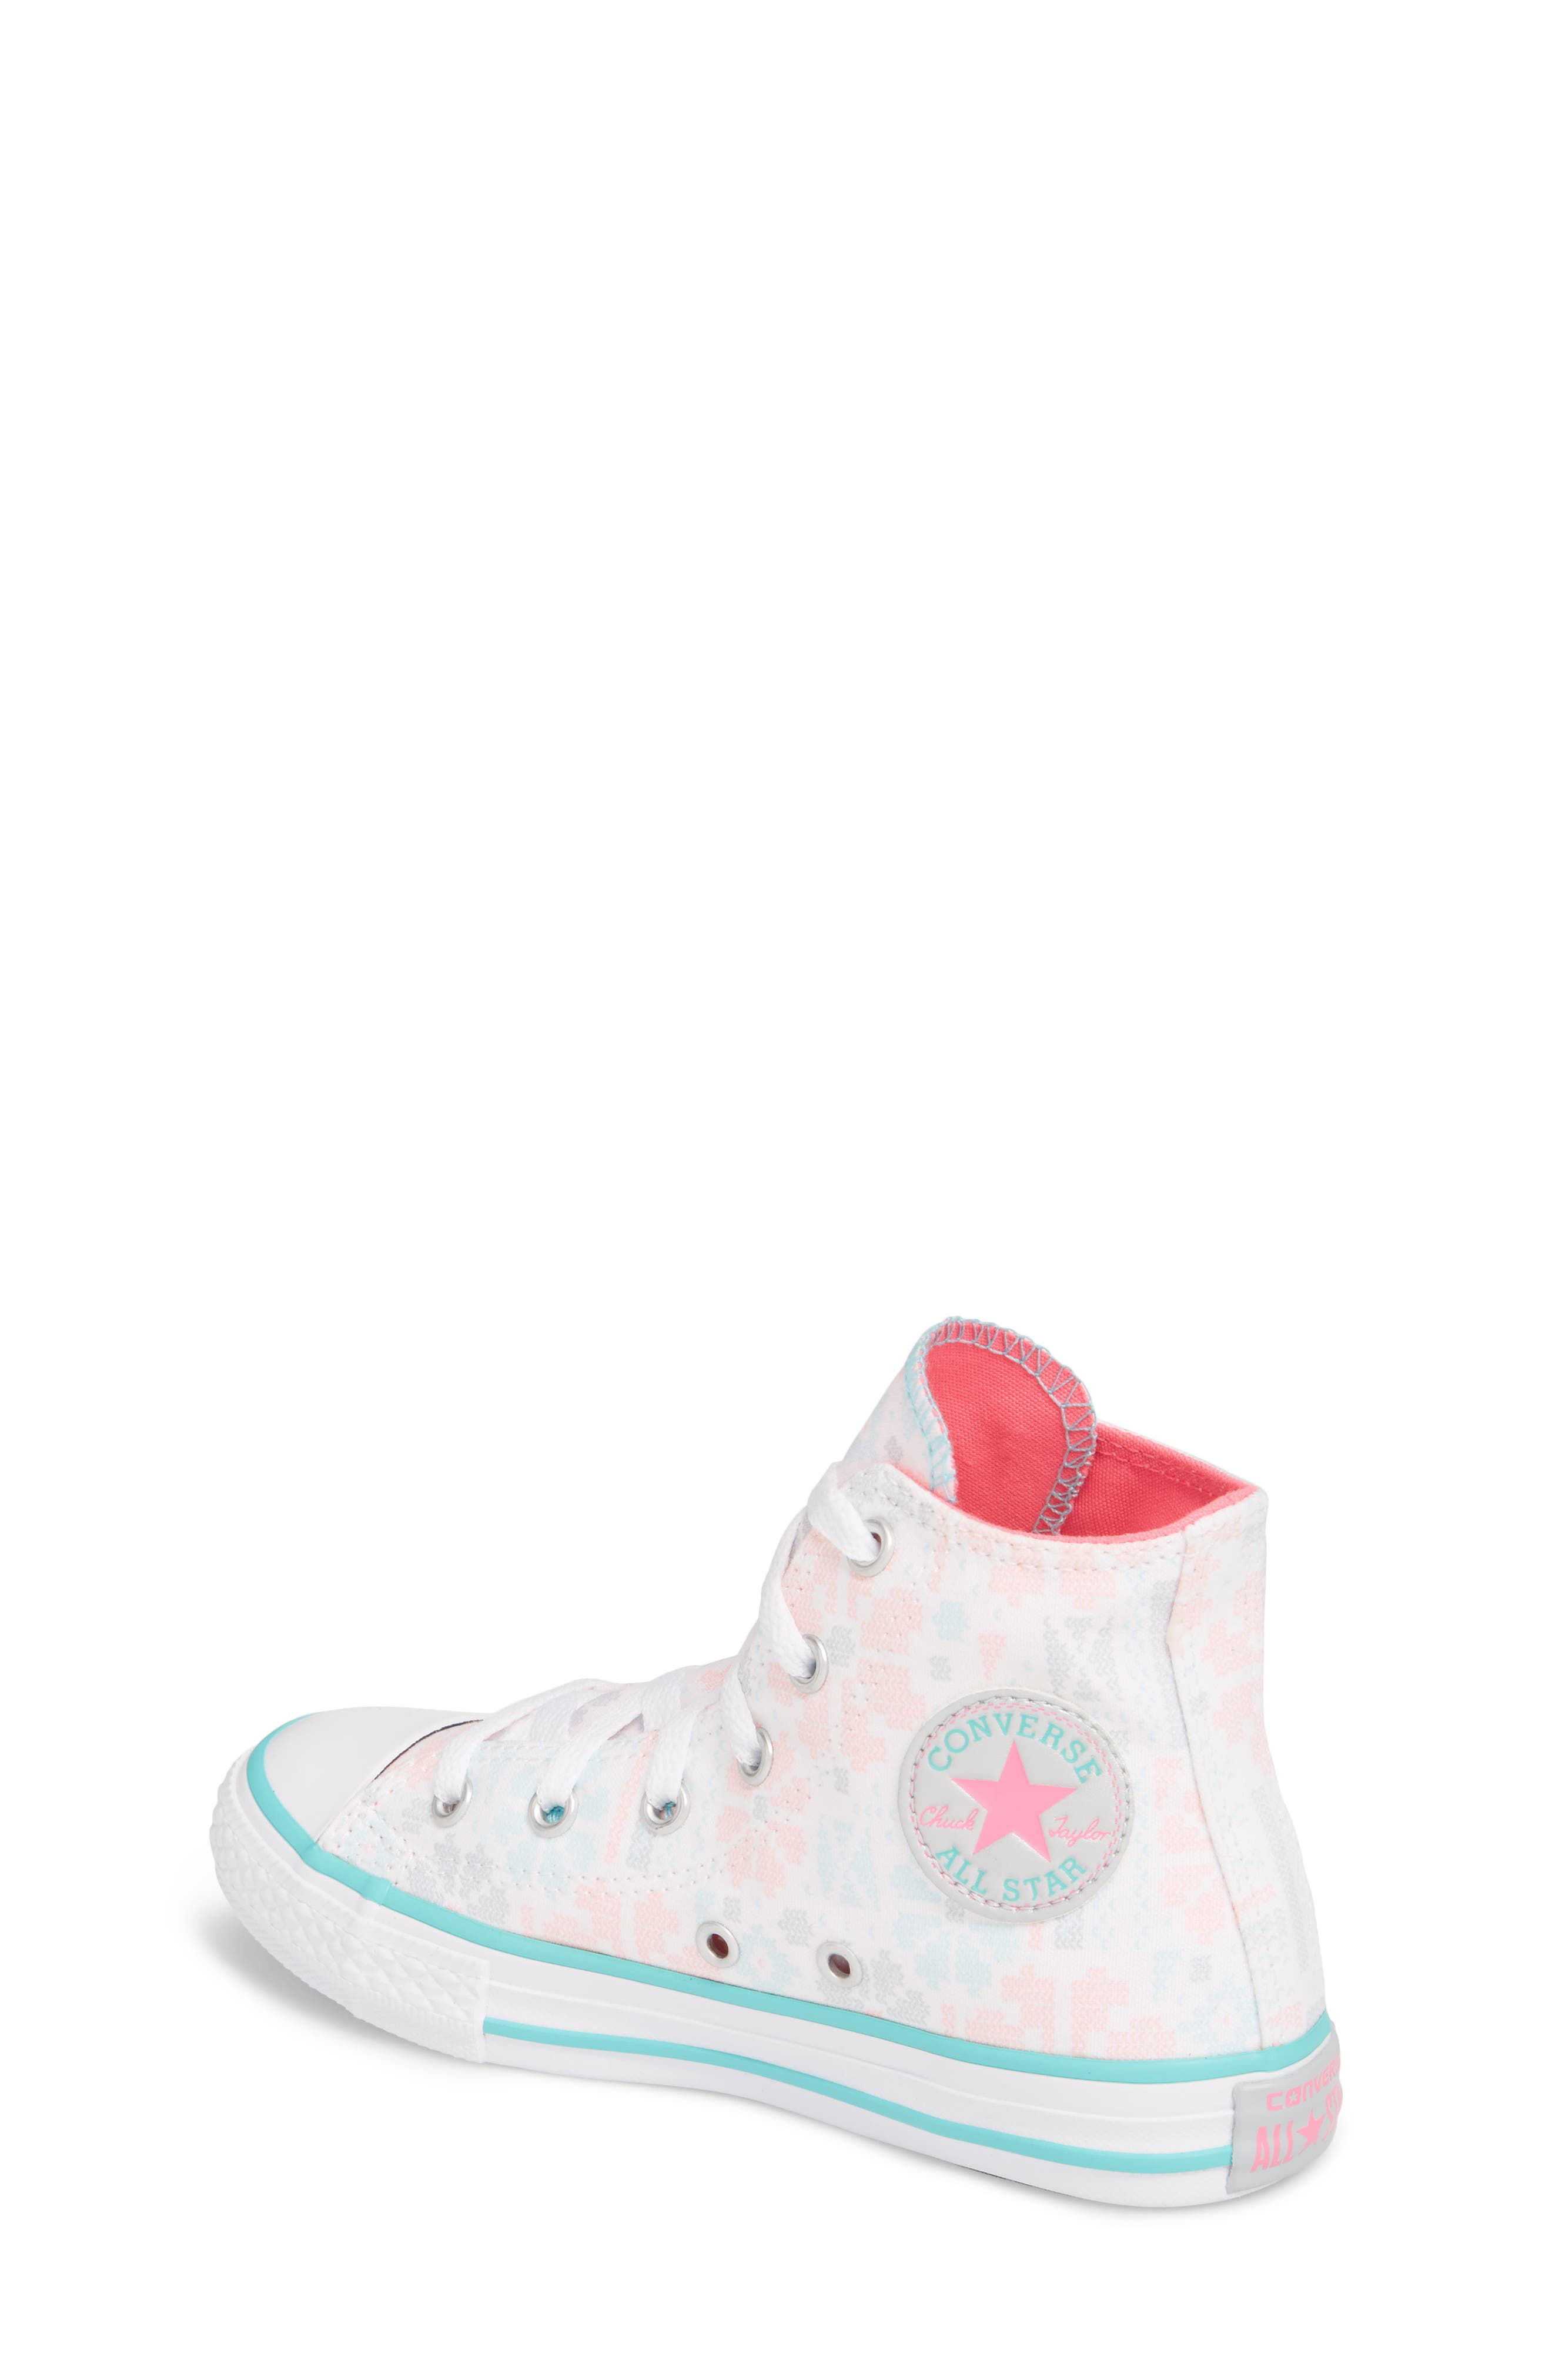 Chuck Taylor<sup>®</sup> All Star<sup>®</sup> High Top Sneaker,                             Alternate thumbnail 2, color,